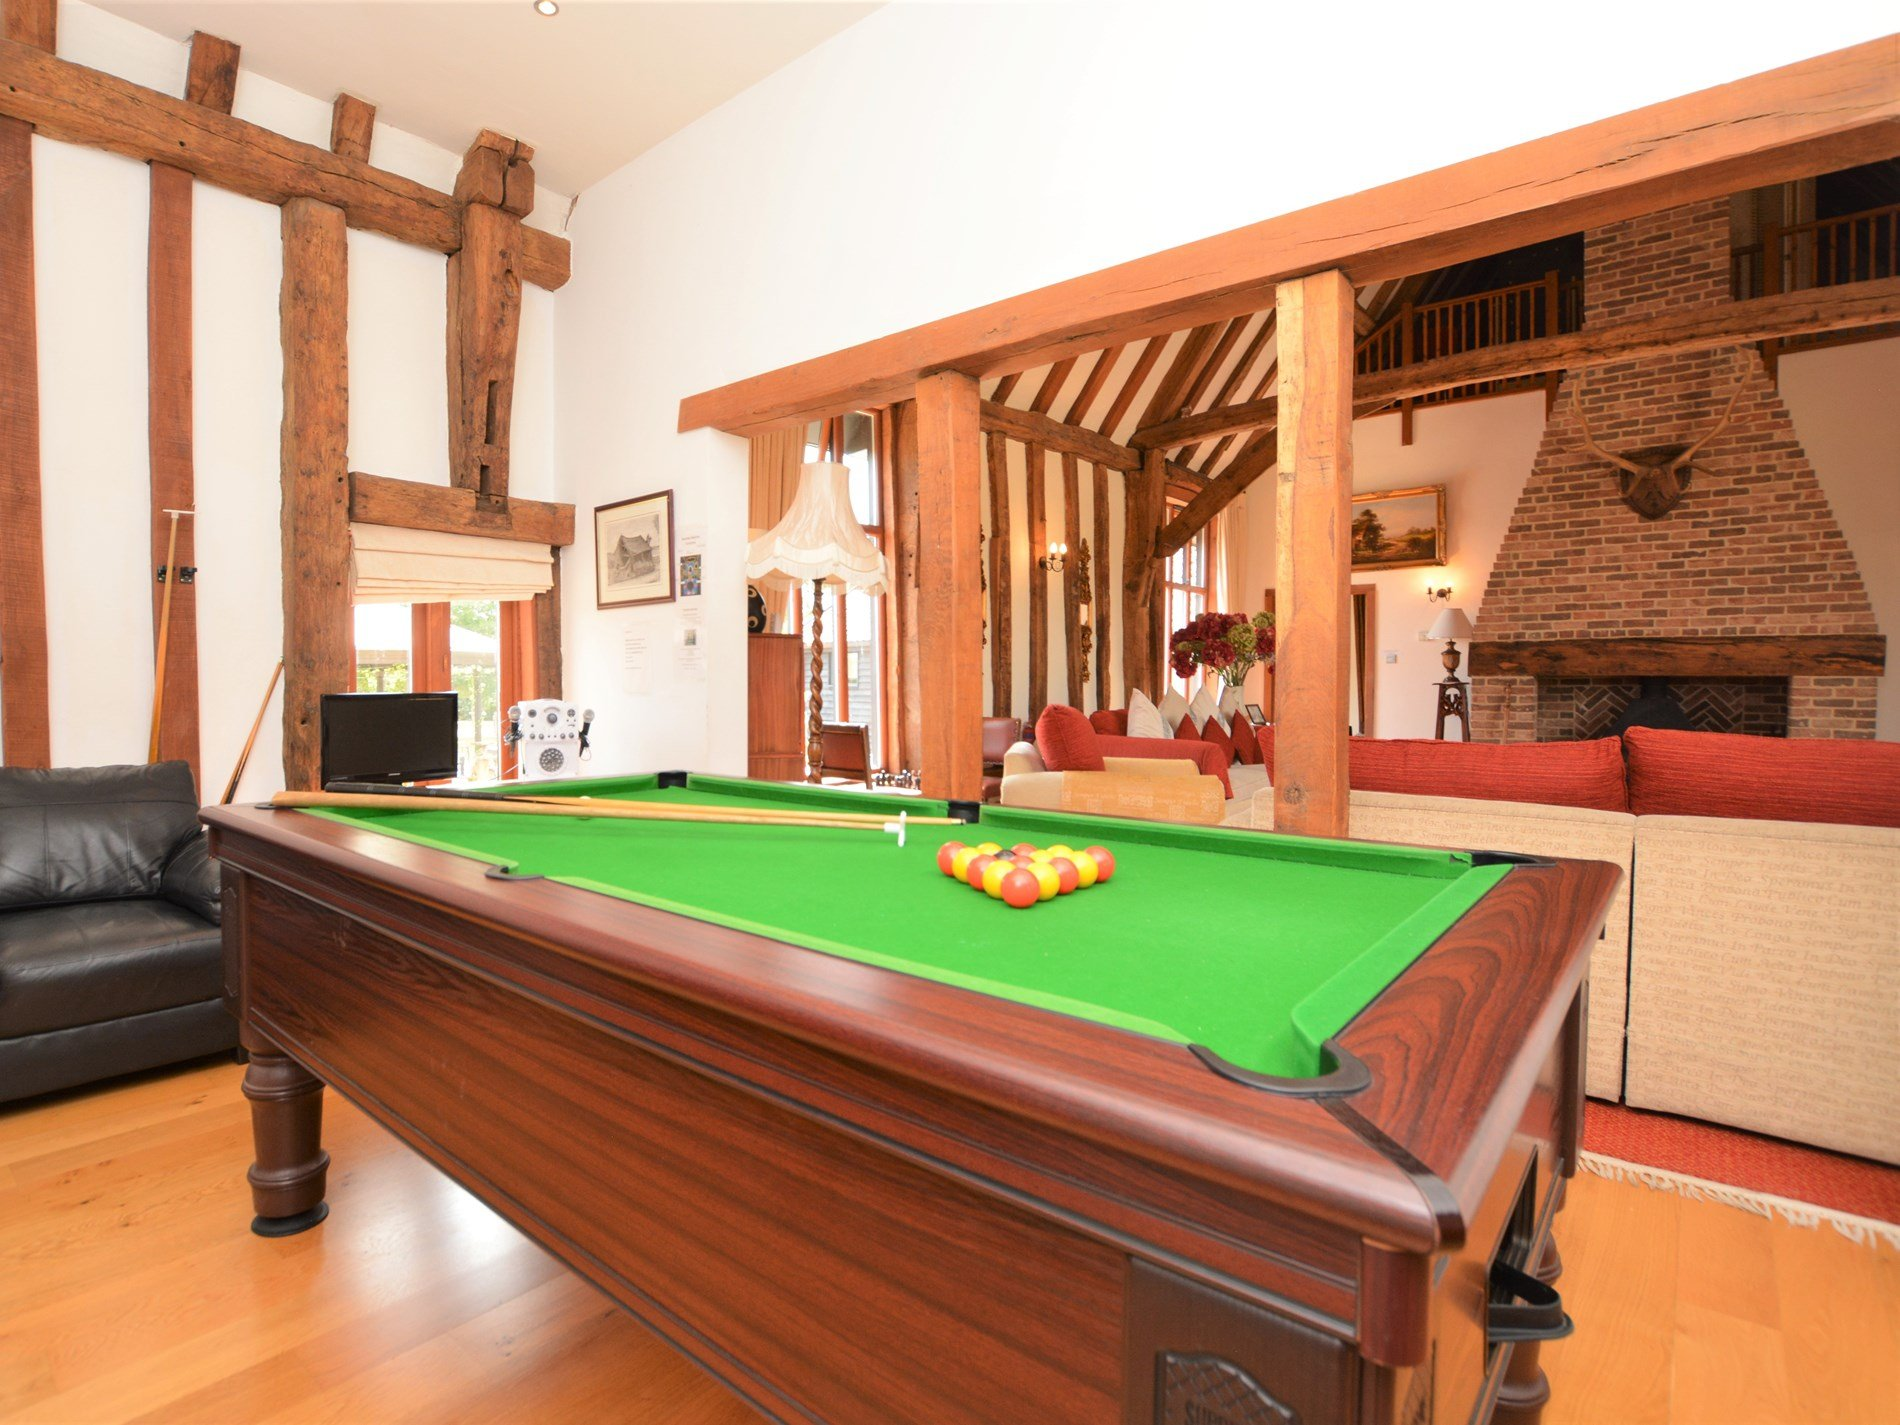 8 Bedroom Cottage in Ipswich, East Anglia